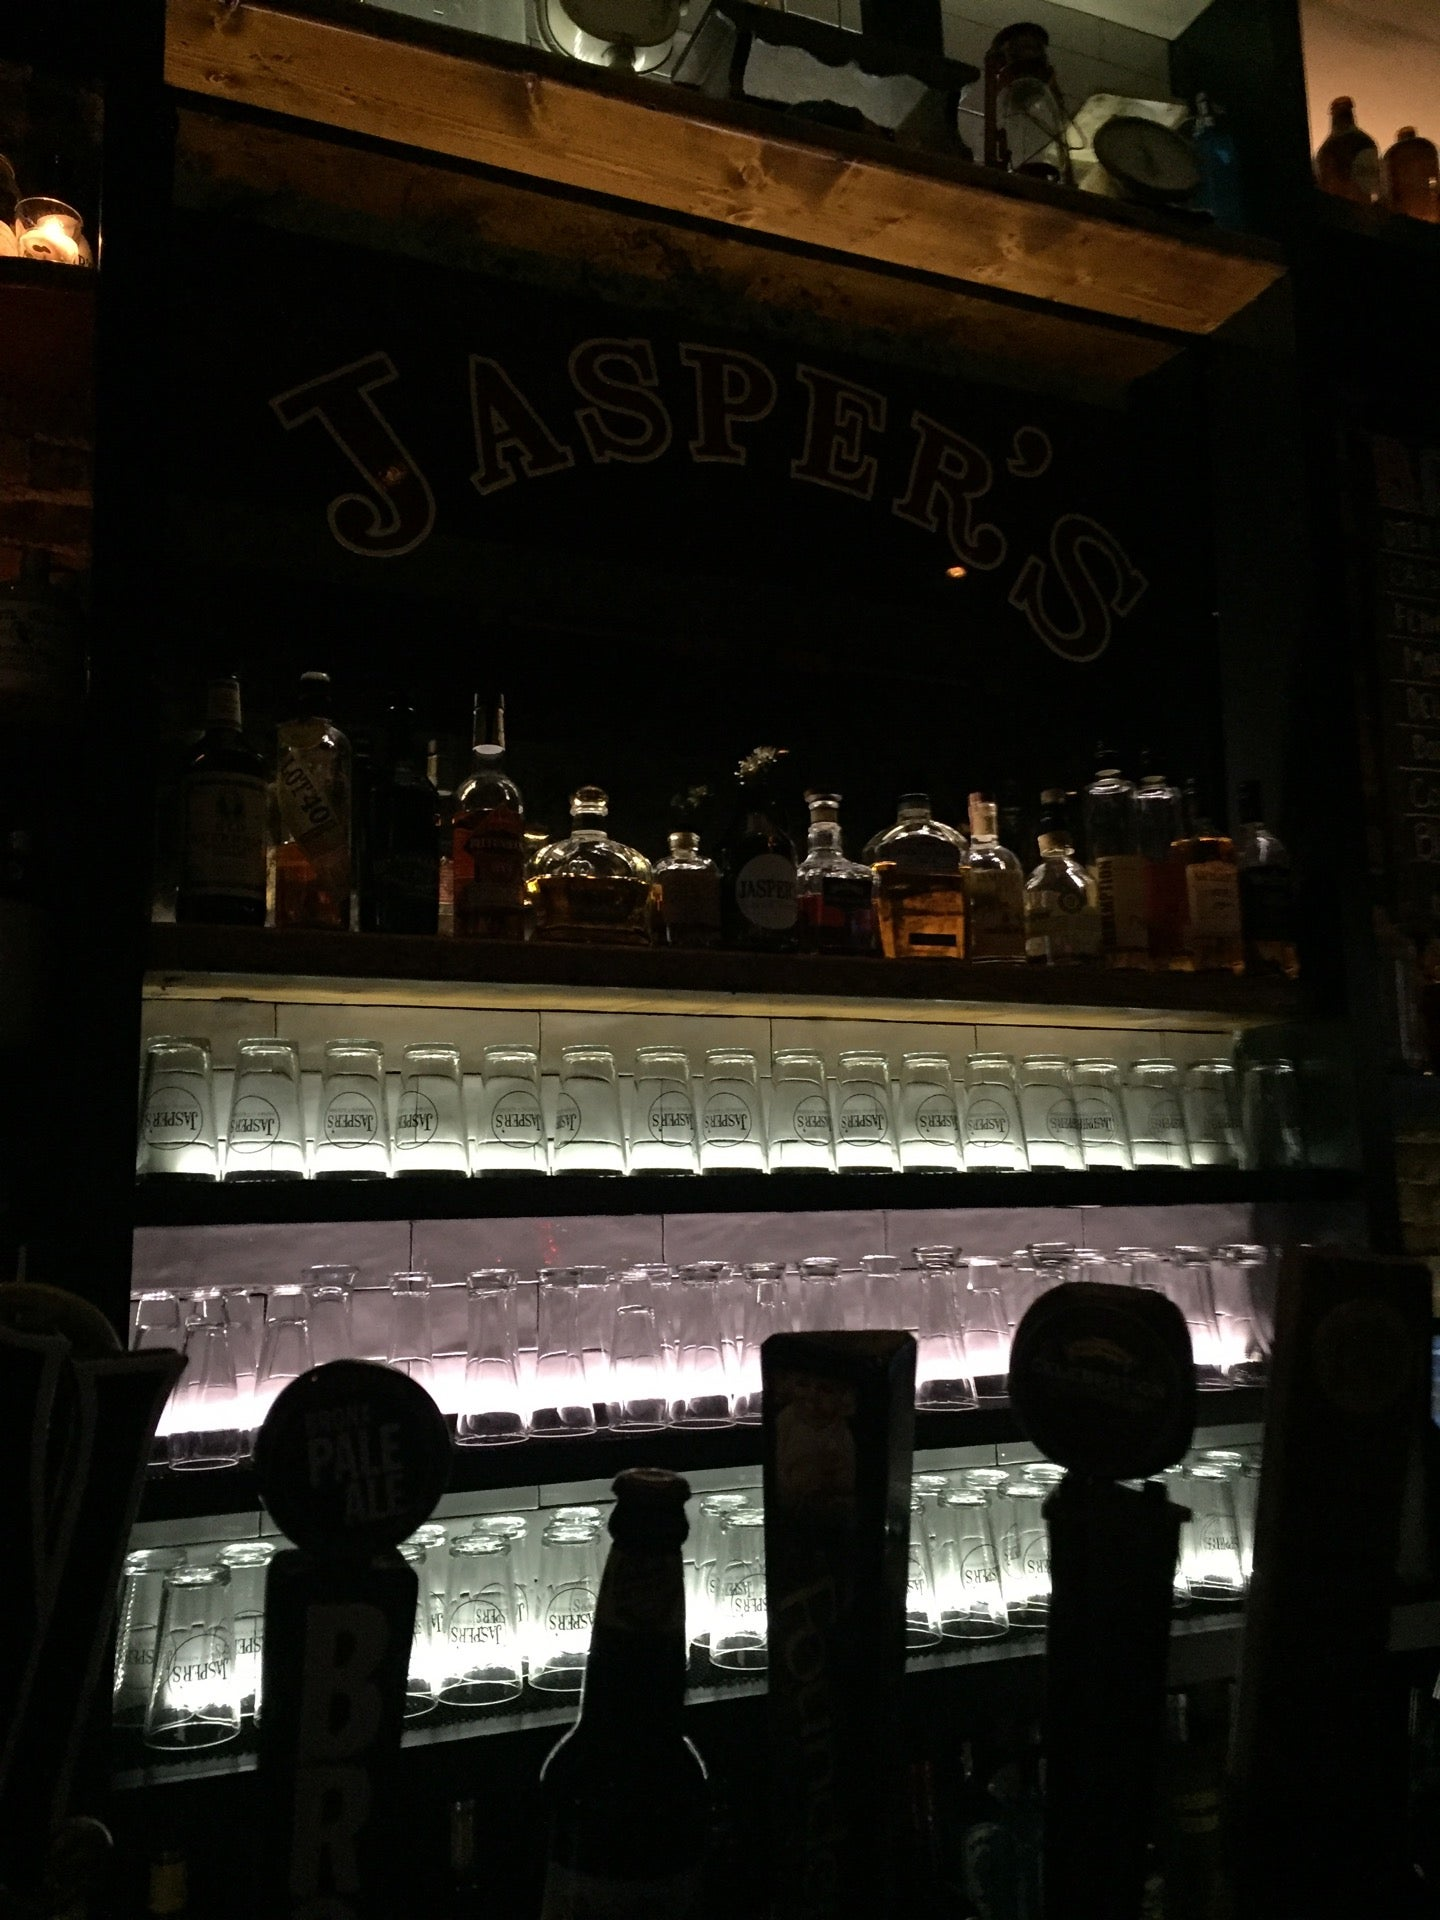 Jaspers Bar And Kitchen,